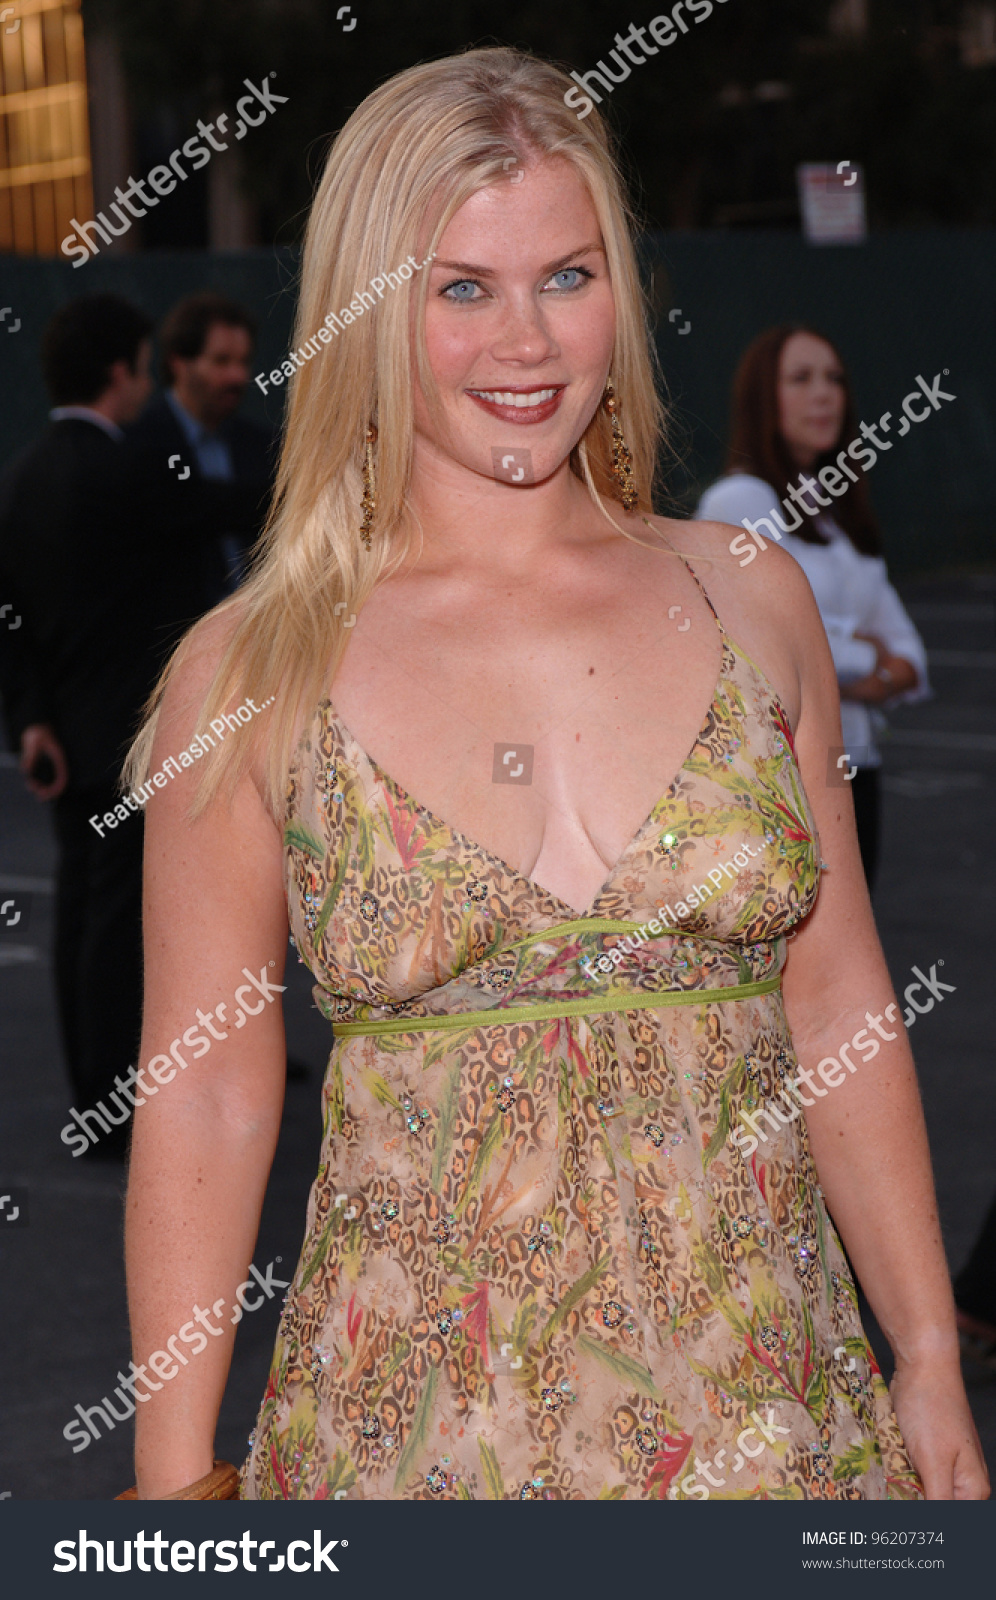 100 Pictures of Alison Sweeney Oops